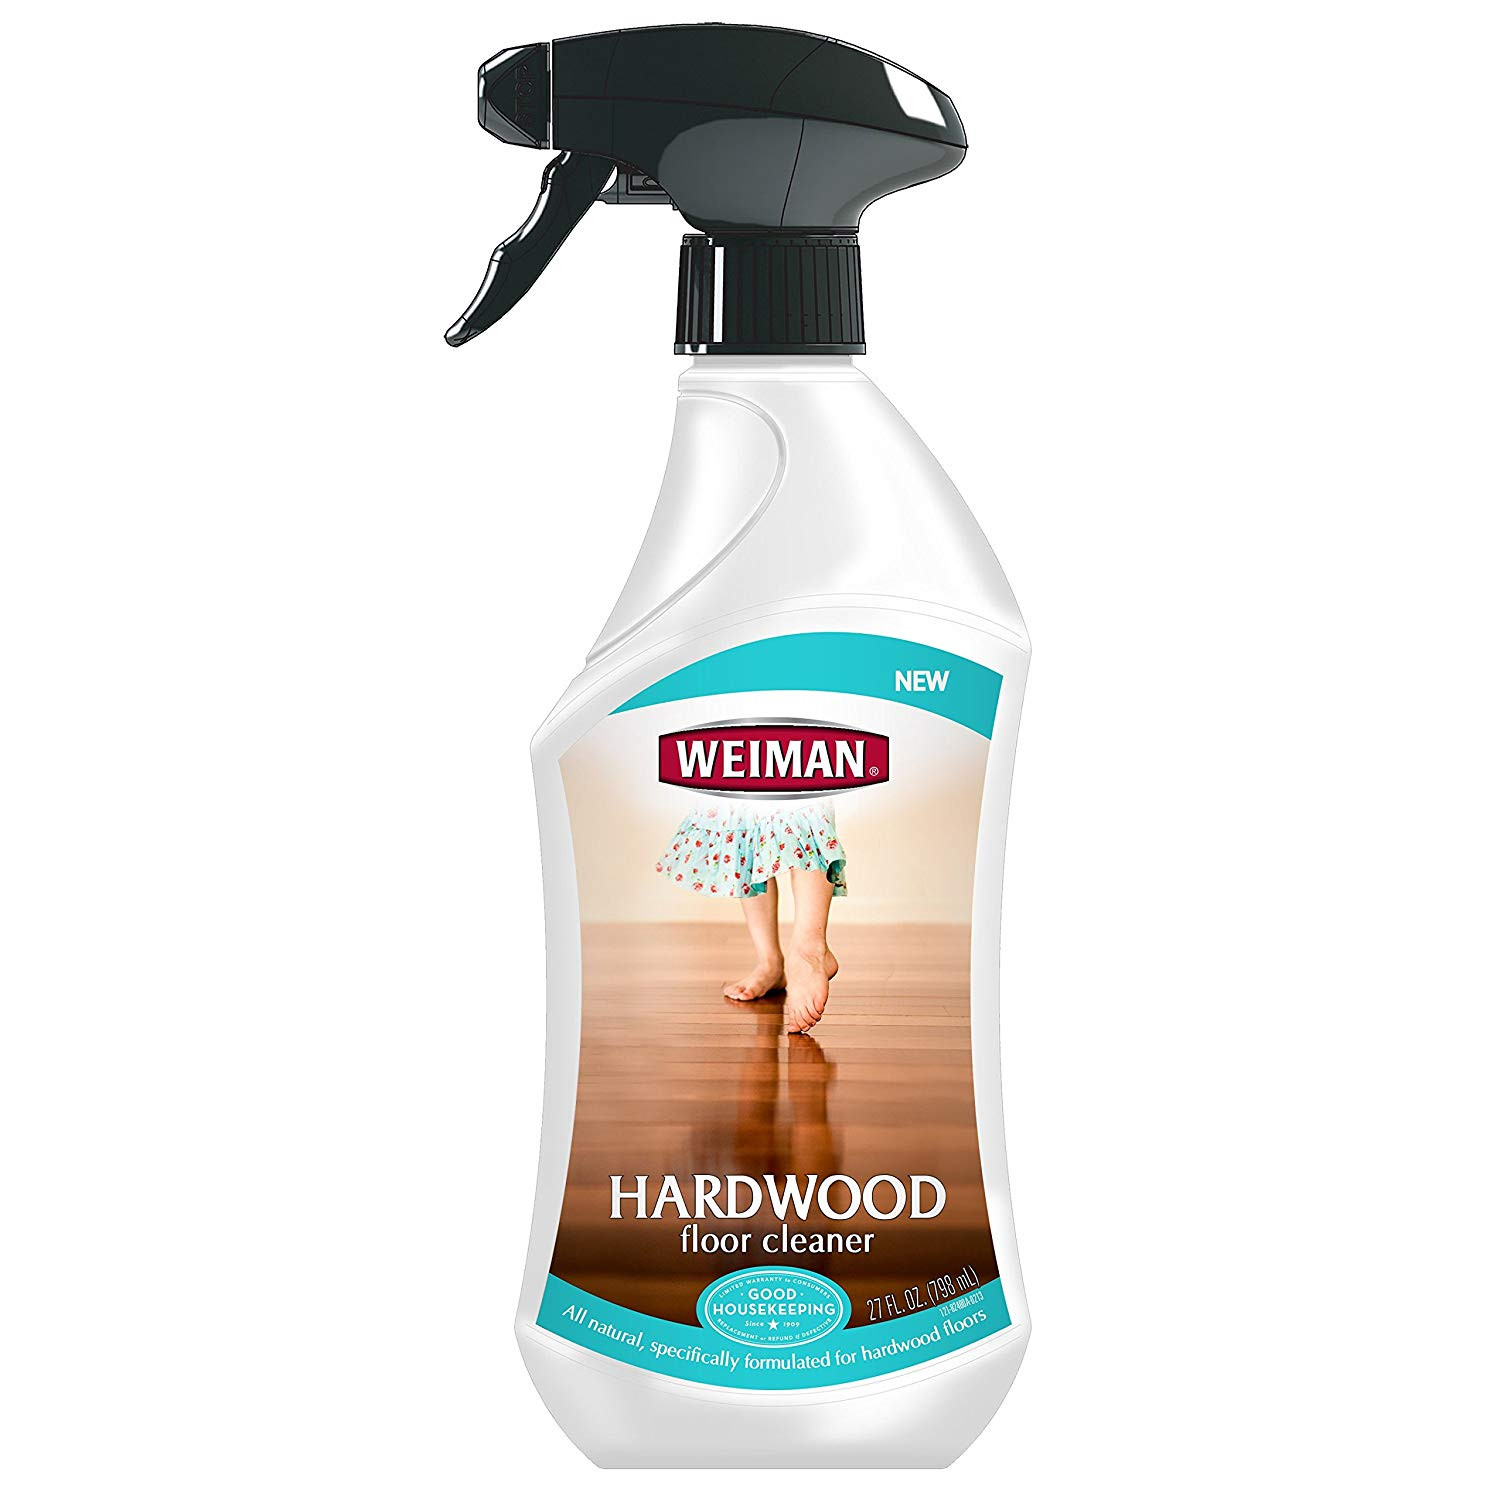 All Star Hardwood Flooring Of Amazon Com Weiman Hardwood Floor Cleaner Surface Safe No Harsh with Regard to Amazon Com Weiman Hardwood Floor Cleaner Surface Safe No Harsh Scent Safe for Use Around Kids and Pets Residue Free 27 Oz Trigger Home Kitchen